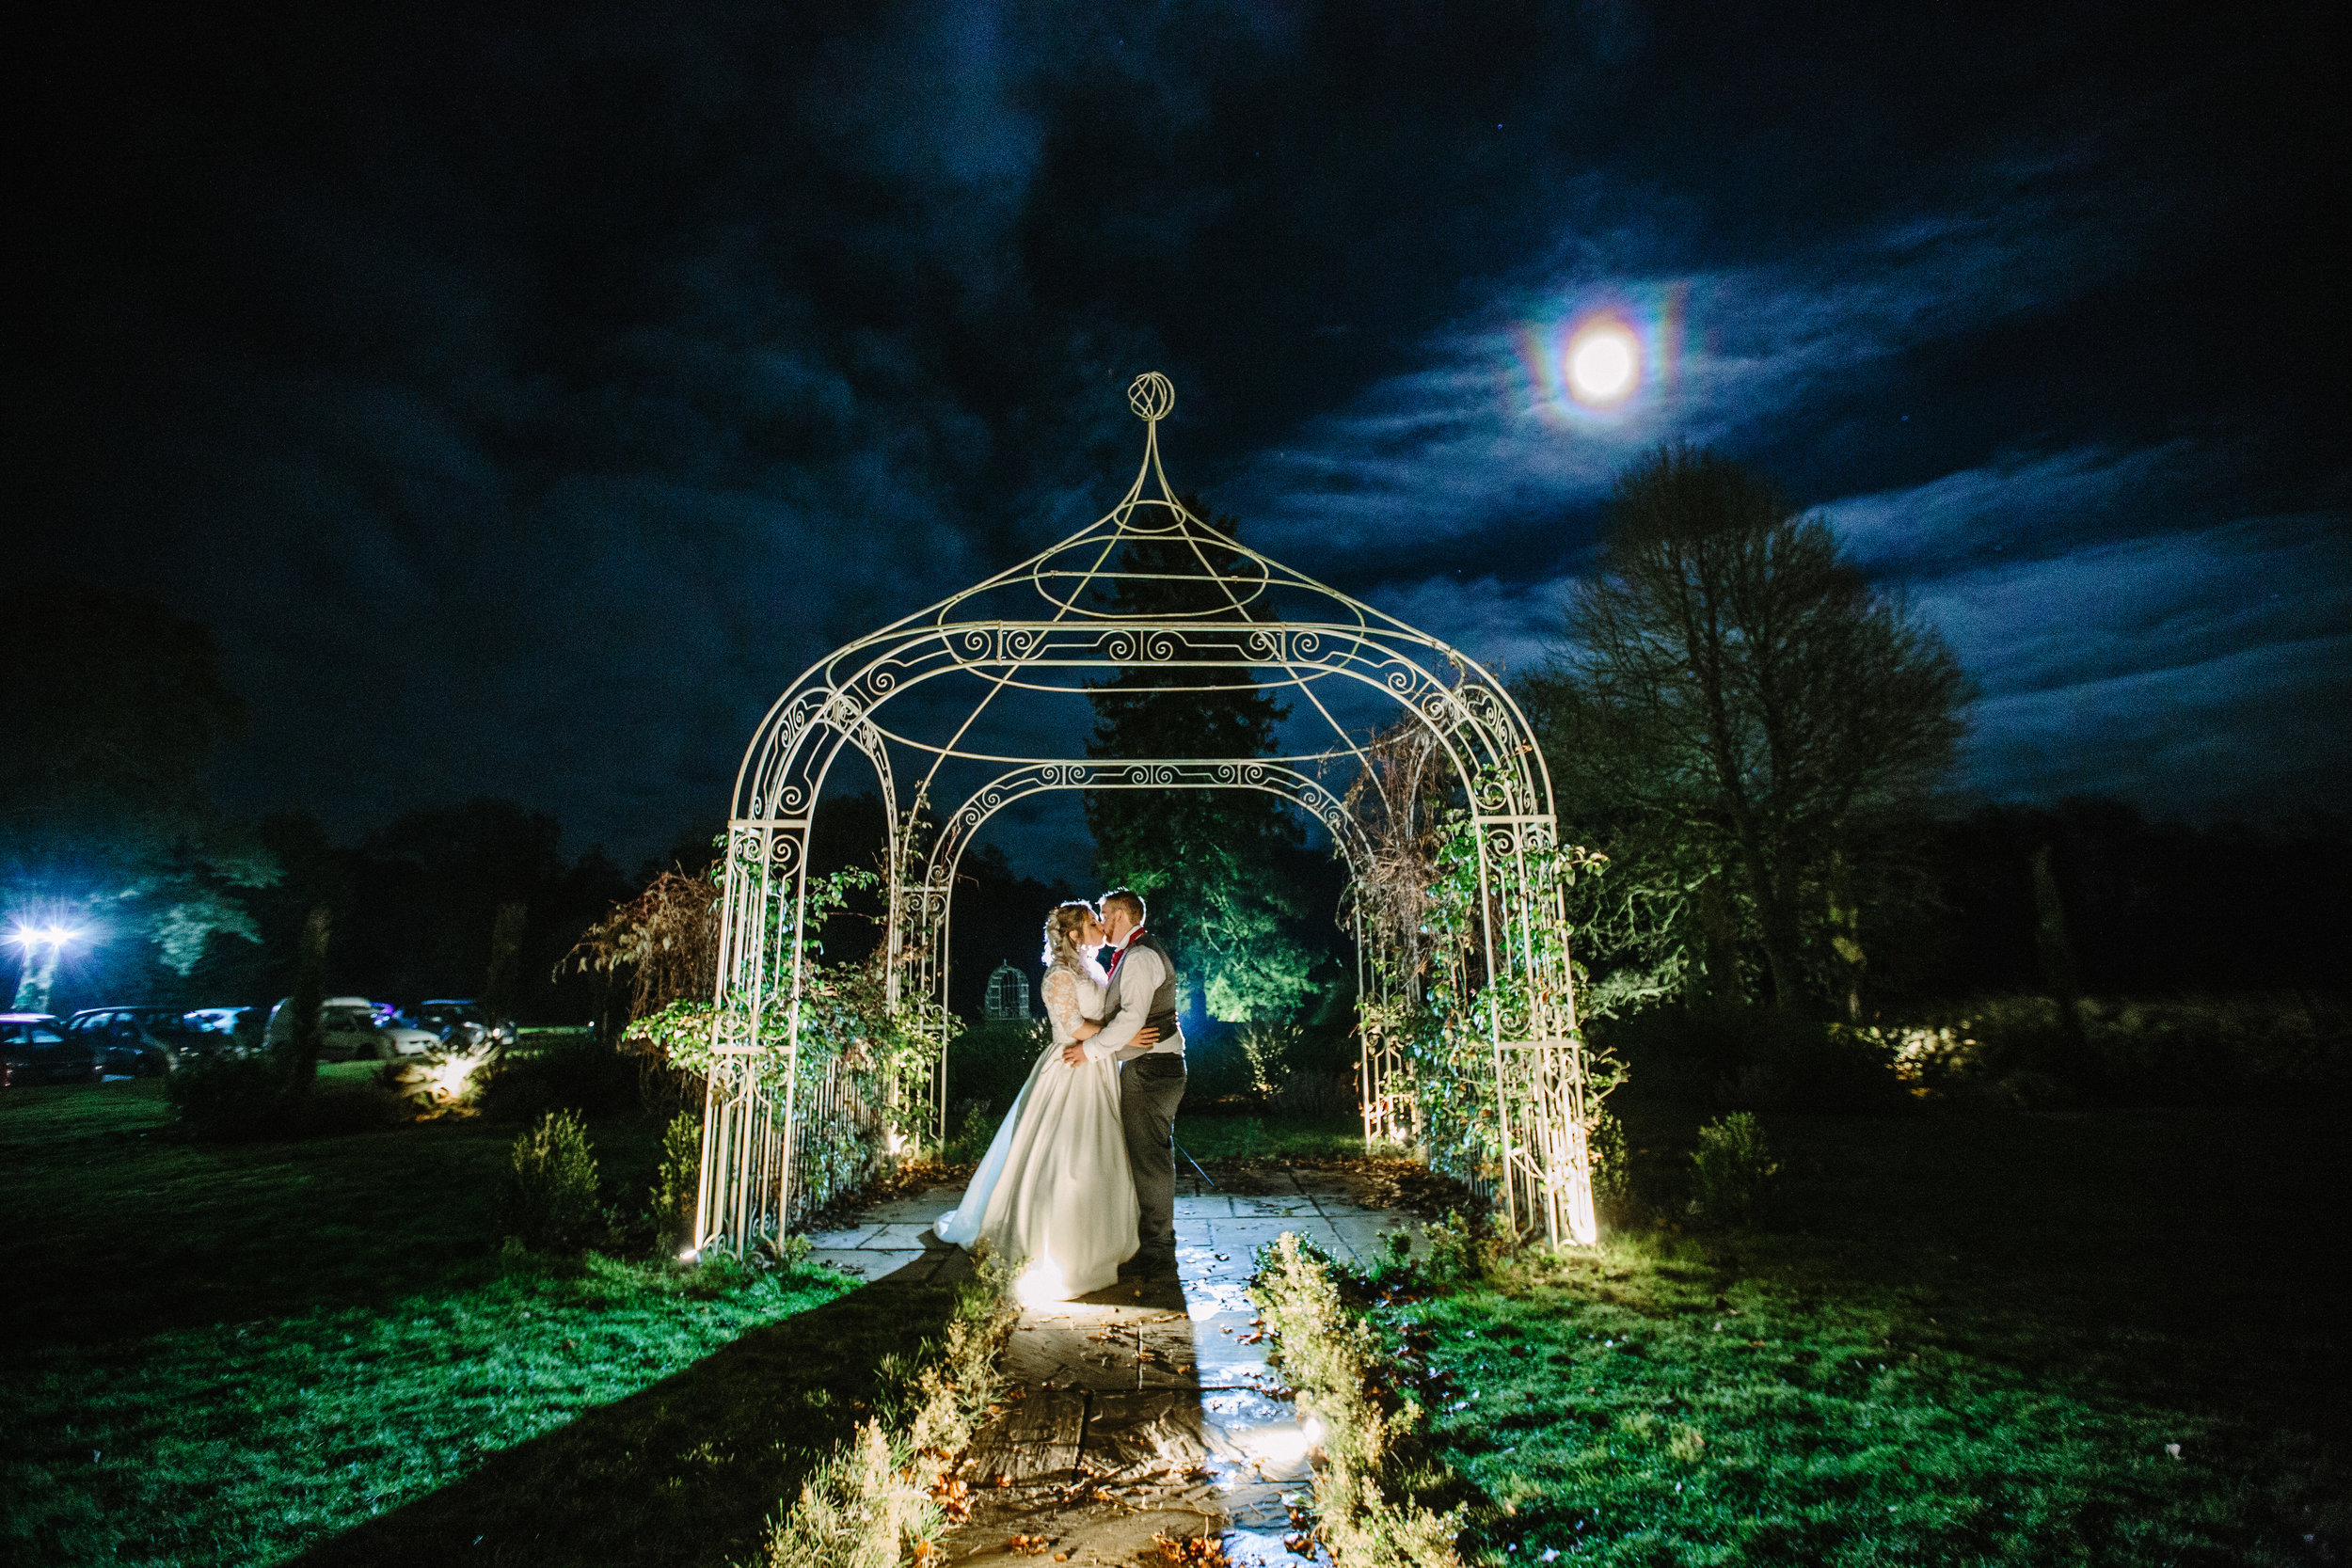 southdowns-manor-sussex-winter-wedding-photography-first-dance-95southdowns-manor-sussex-winter-wedding-photography-night-gazebo-portrait-104